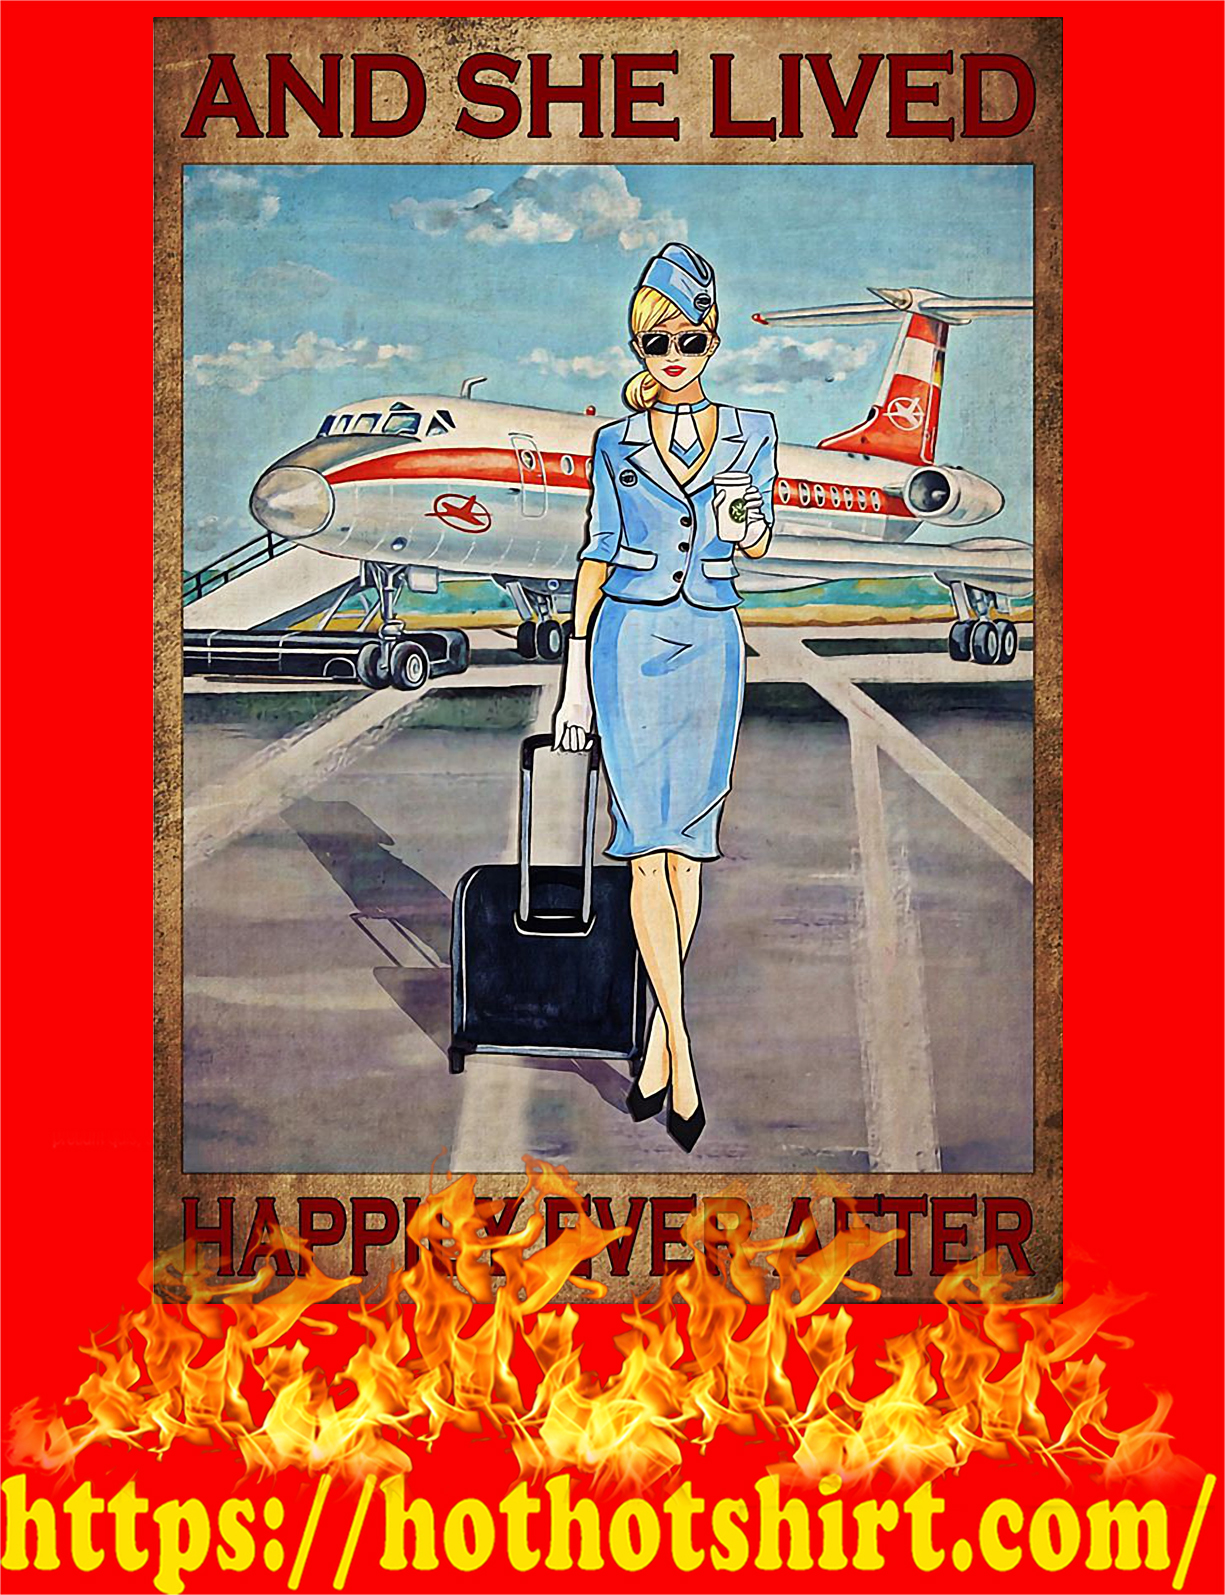 Flight Attendant And She Lived Happily Ever After Poster - style 7